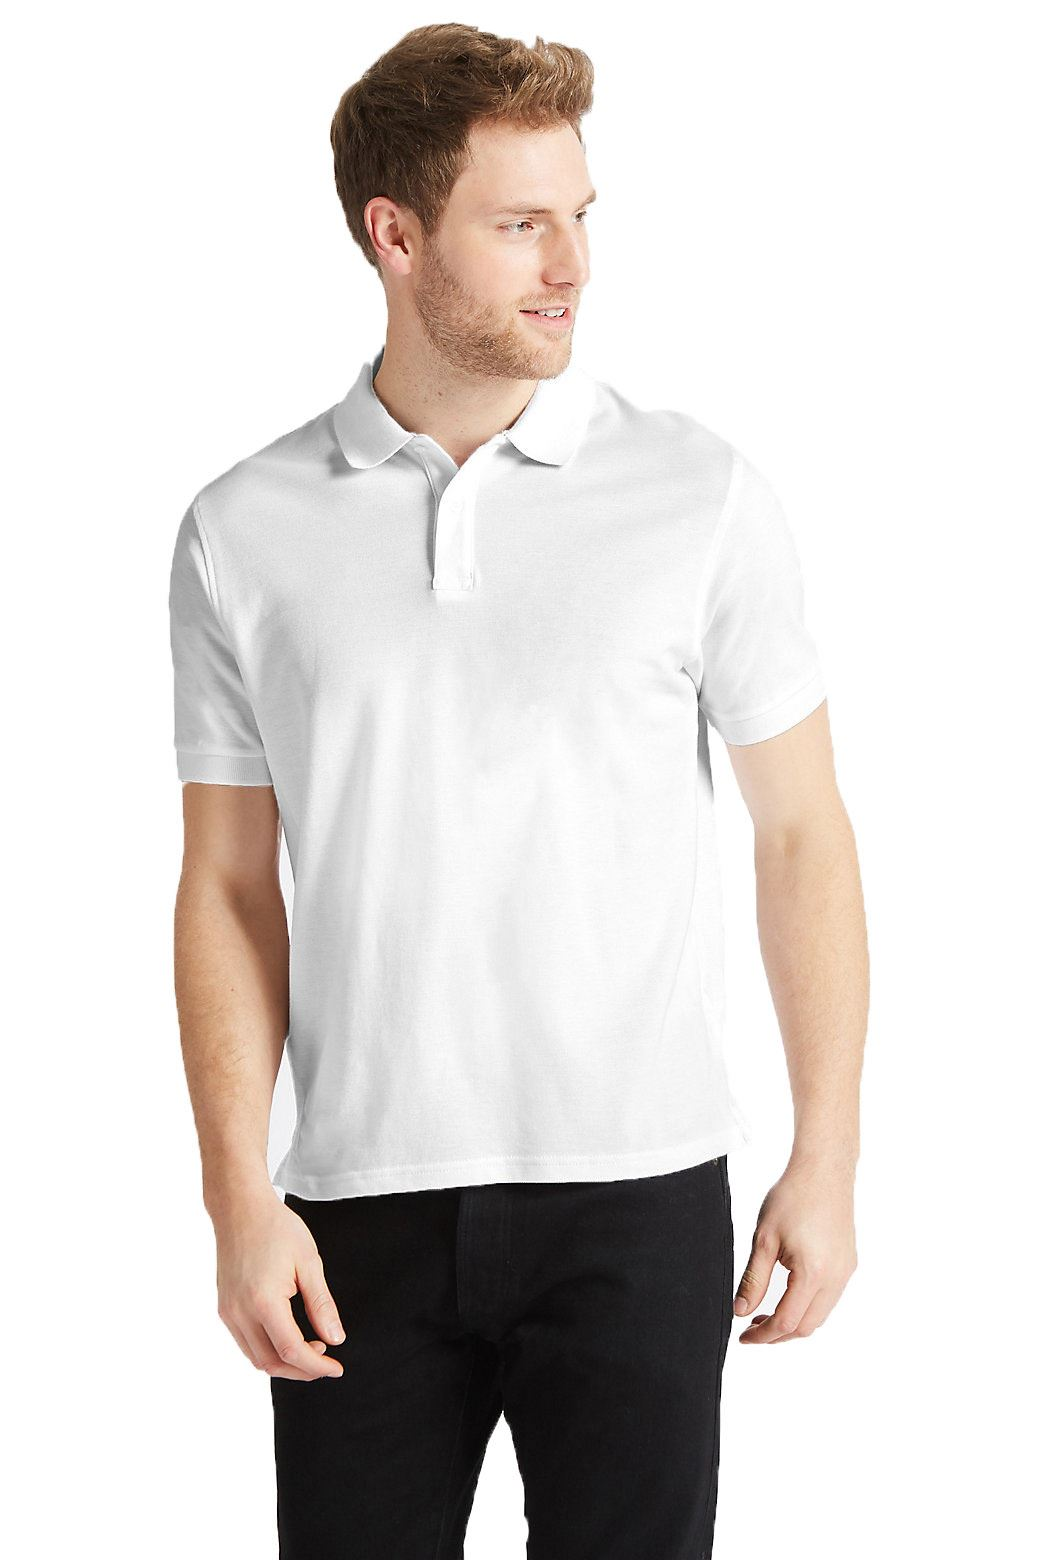 Ex-Marks-and-Spencer-Mens-Cotton-Pique-Polo-Shirt-NEW-Sizes-S-3XL thumbnail 31